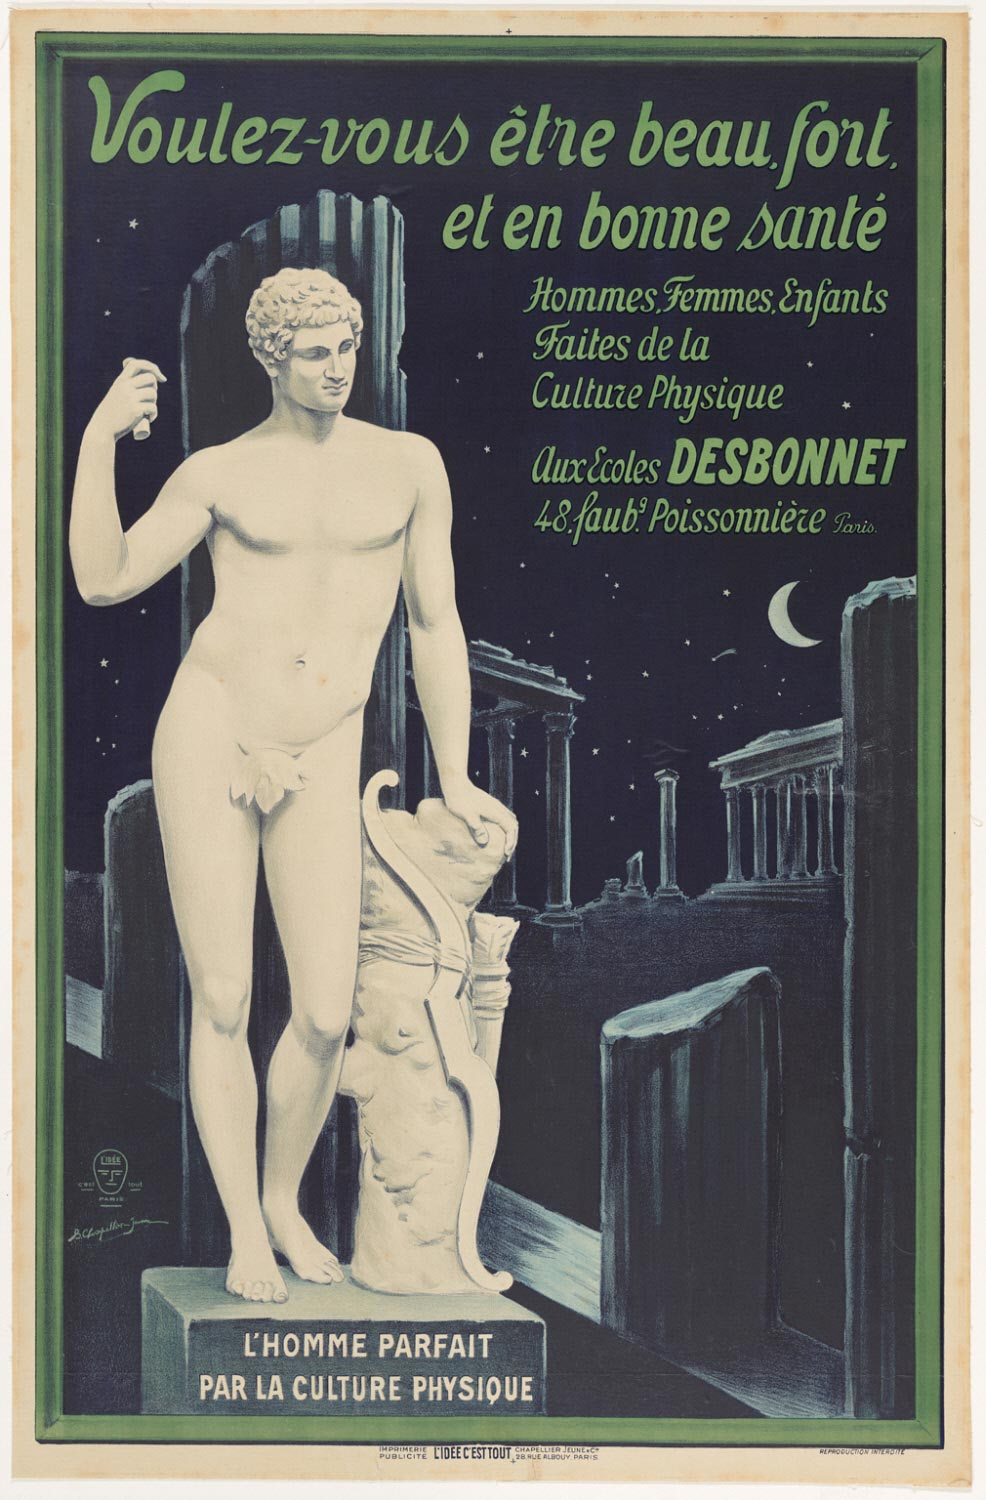 Do You Want to Be Handsome, Strong, and in Good Health? Men, Women, Children - Take up Physical Culture at the Écoles Desbonnet (48, Faubourg Poissonière, Paris)